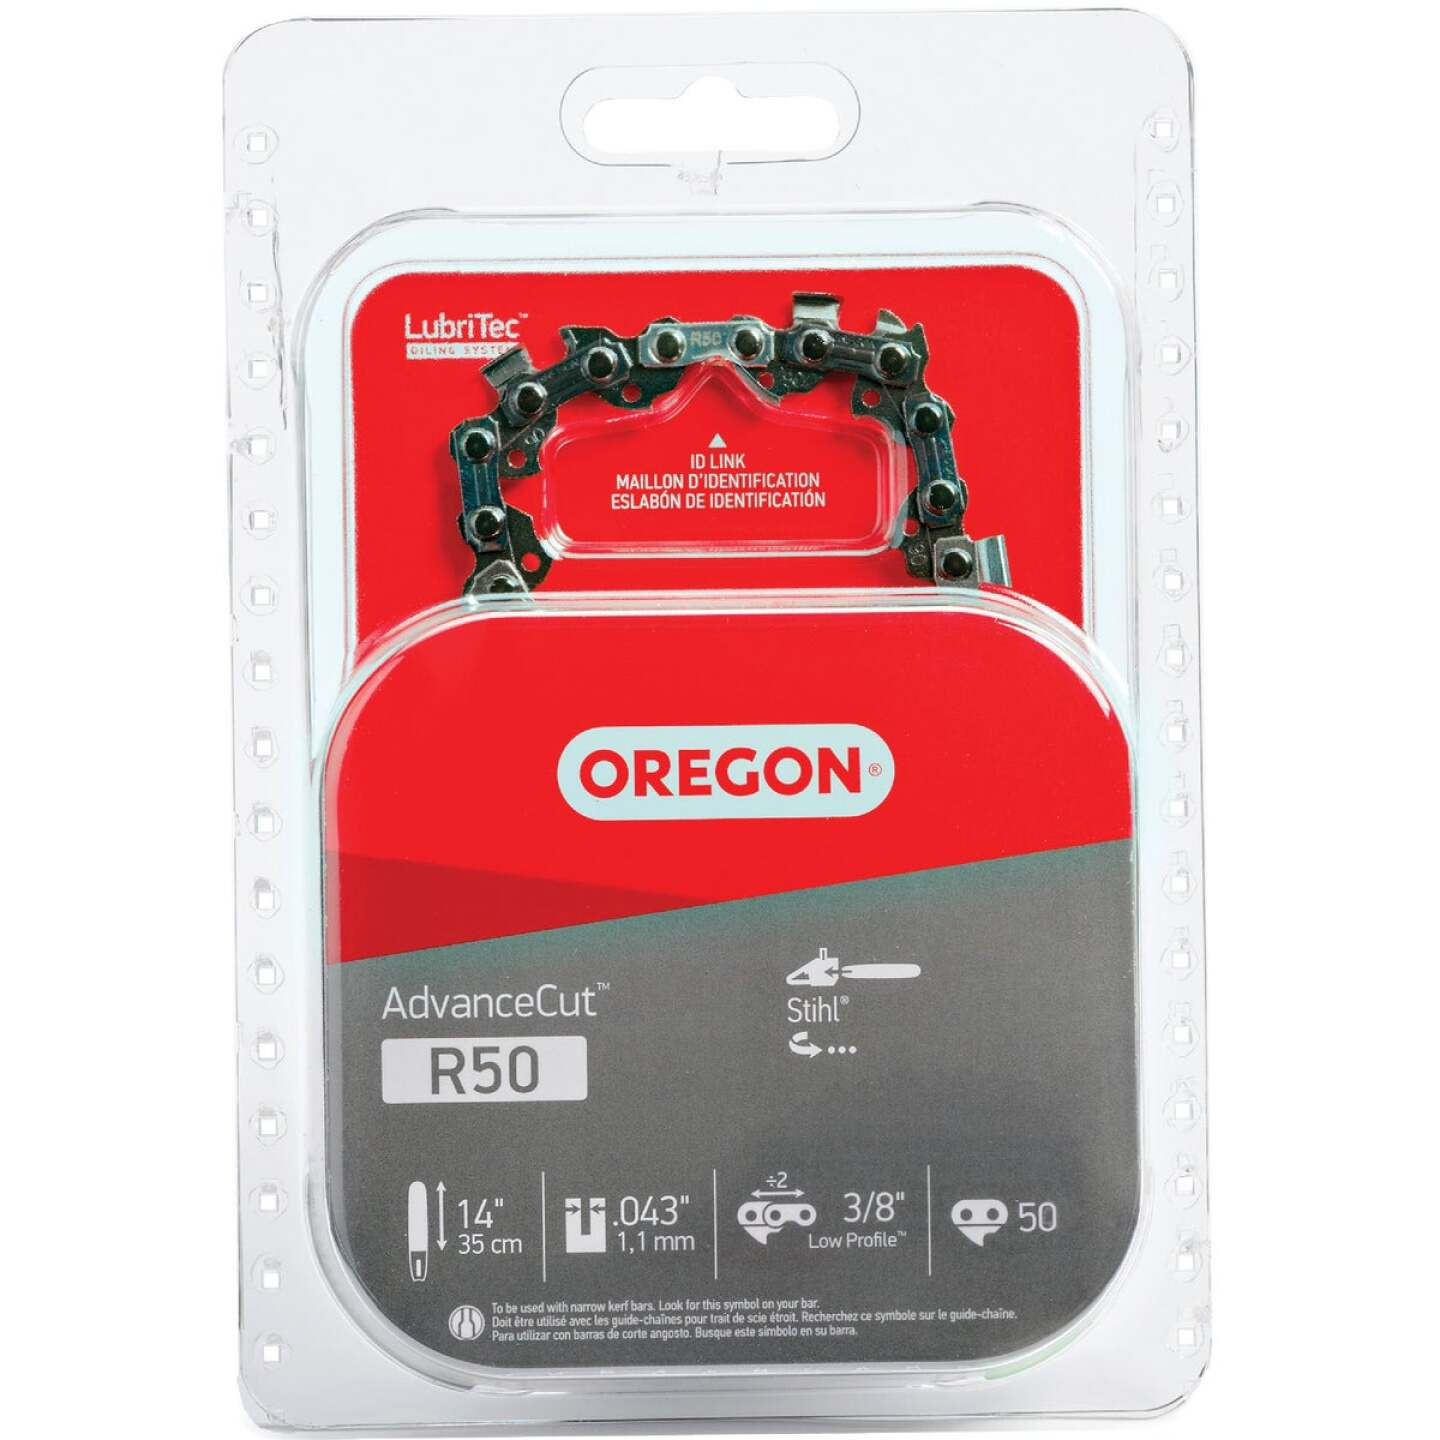 Oregon AdvanceCut LubriTec R50 14 In. 3/8 In. Low Profile 50 Link Chainsaw Chain Image 1